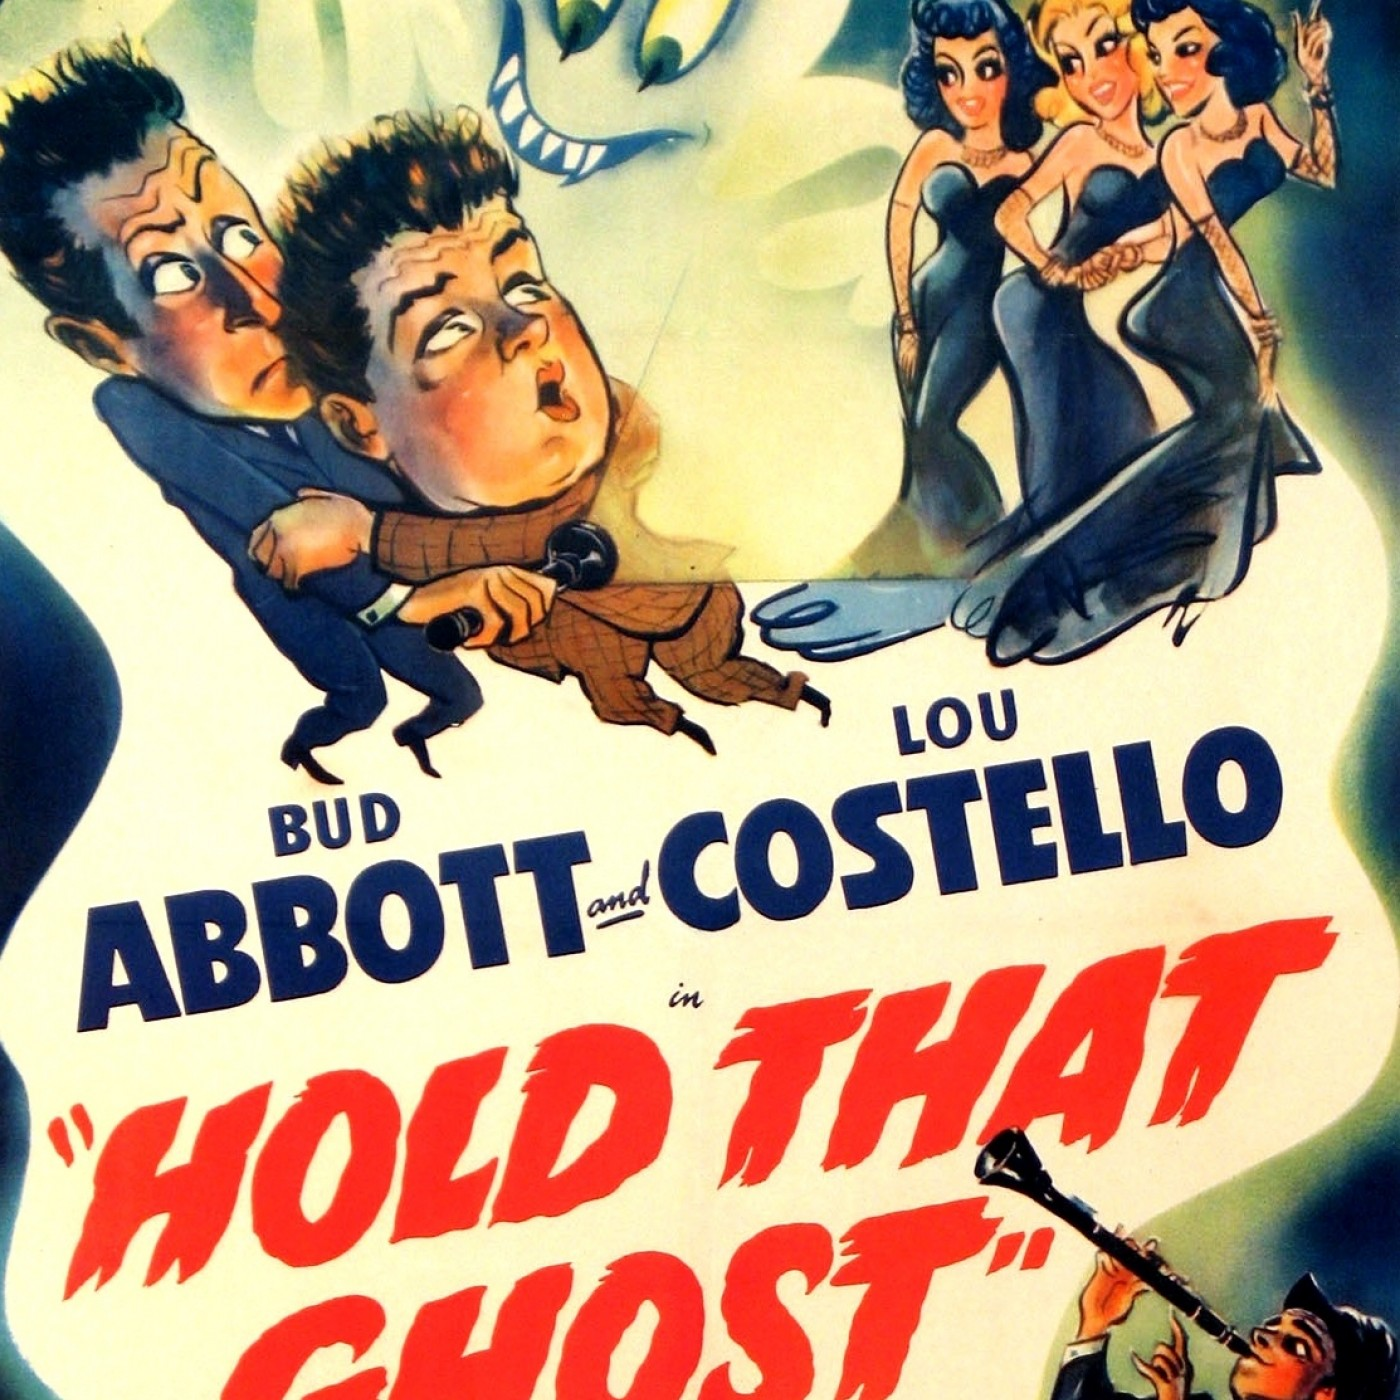 The Writer's Block - Who's on First, for the best Scare take in the business. Abbott & Costello